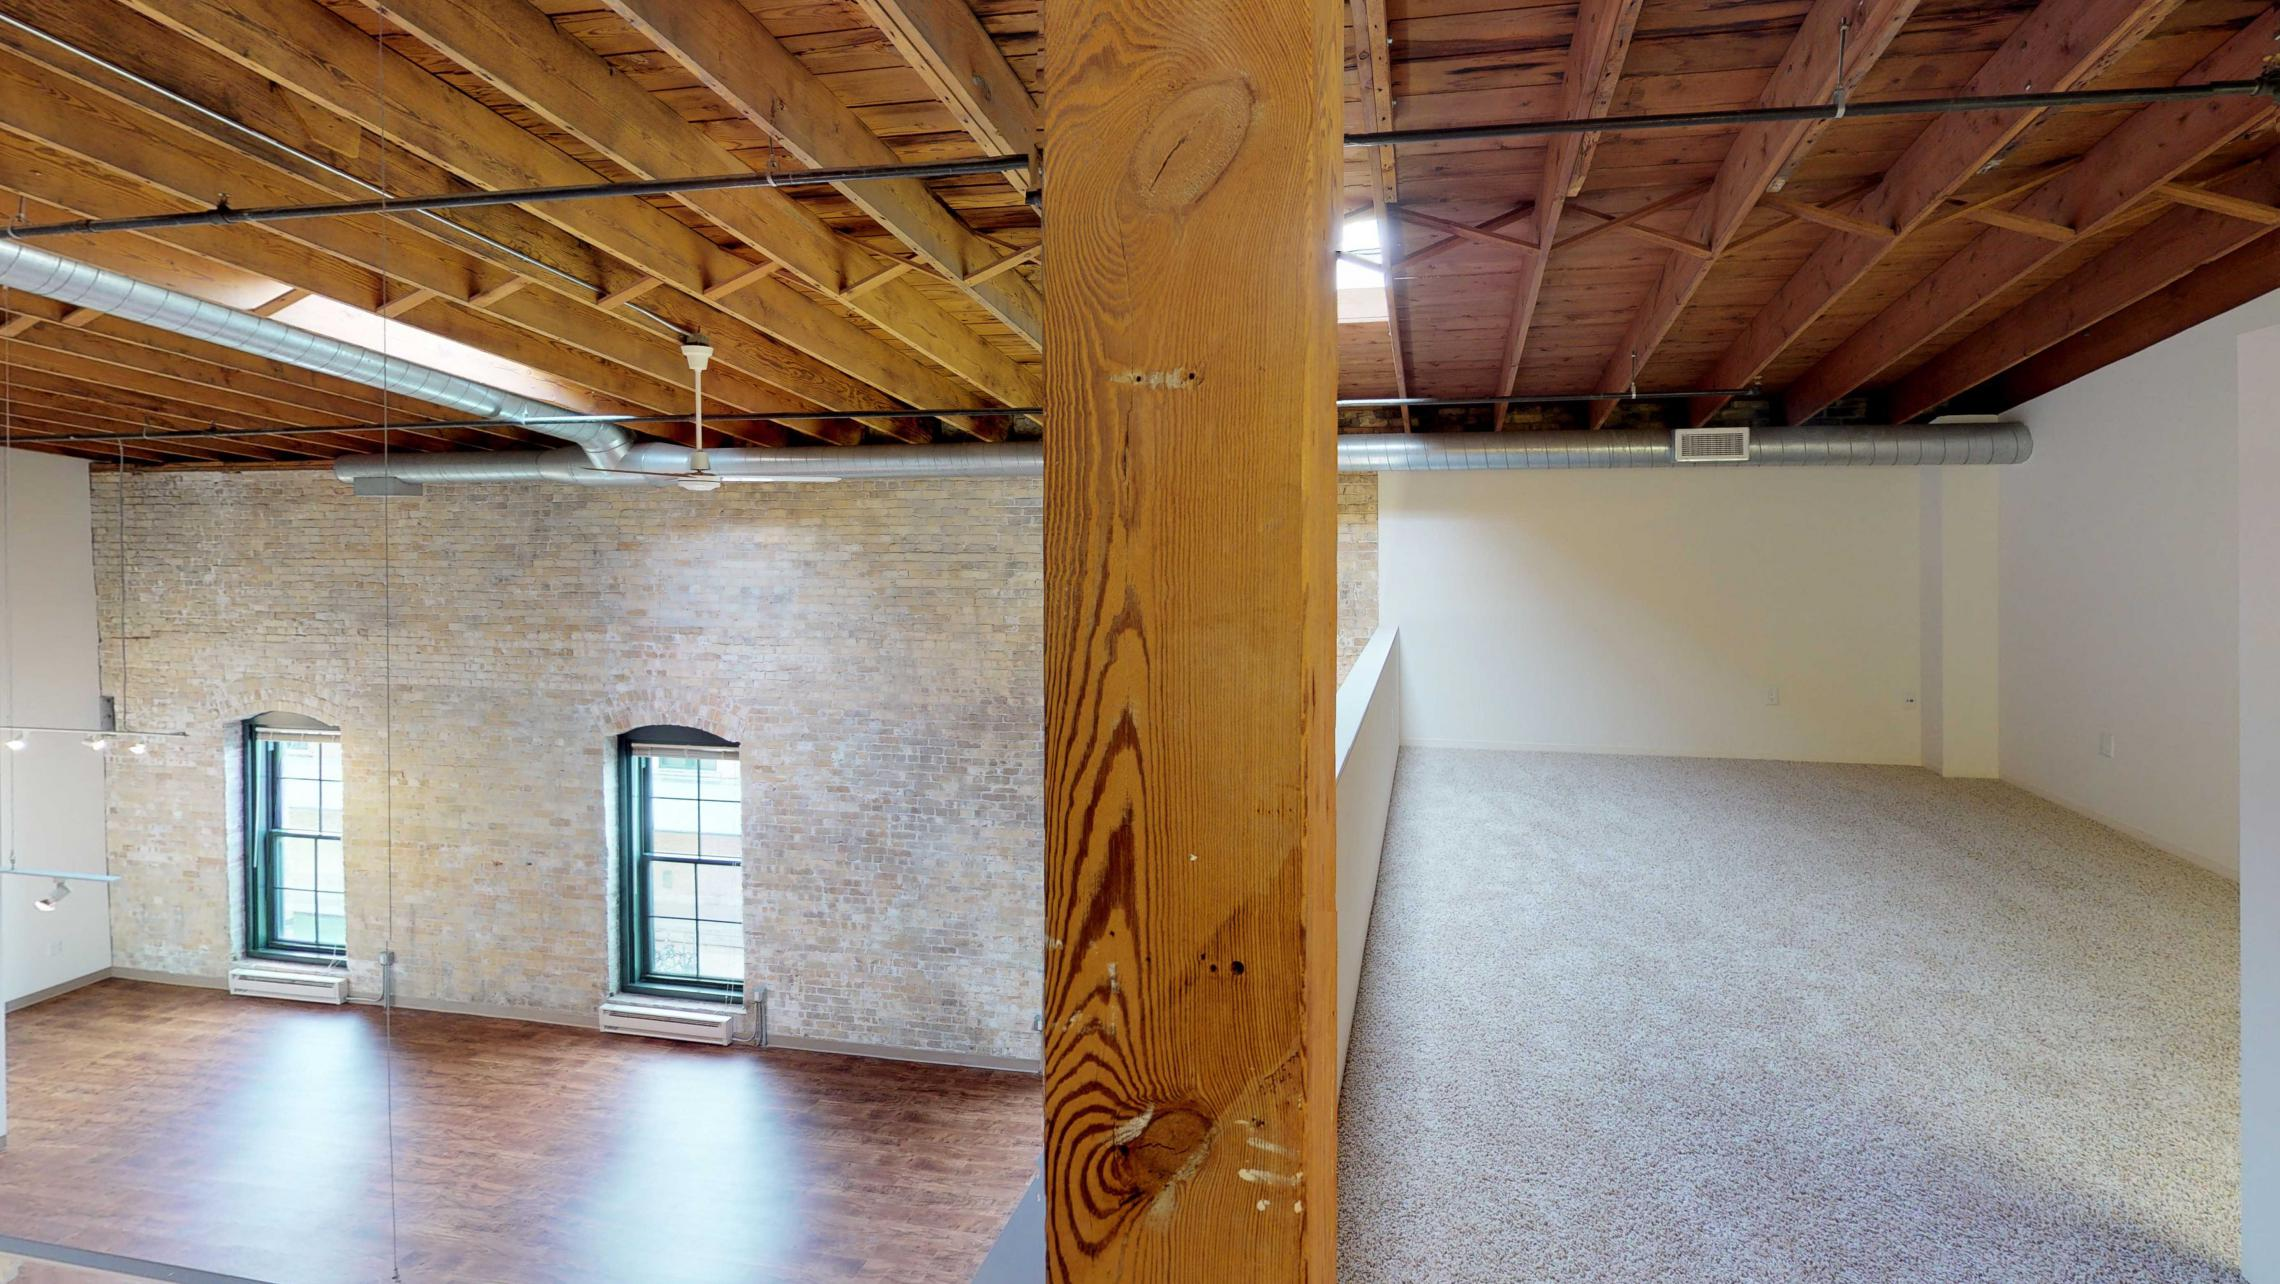 Tobacco-Lofts-Apartment-E306-Lofted-Downtown-Historic-Two-Bedroom-Madison-Design-Exposures-Luxury